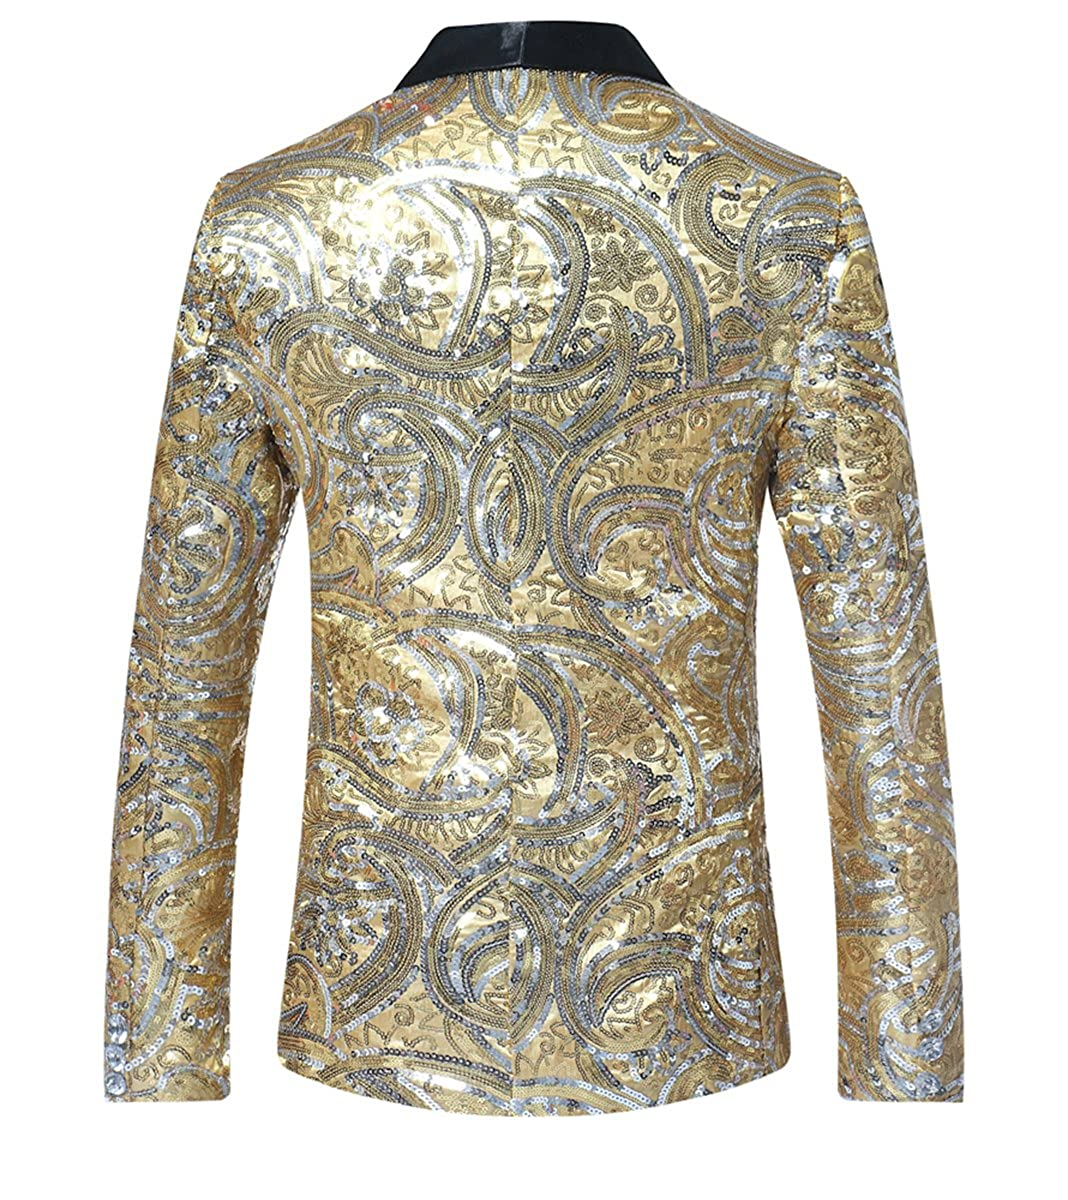 Blazers Smart Men Sequins Blazer Designs Plus Size 2xl Black Velvet Gold Sequined Suit Jacket Dj Club Stage Party Wedding Clothes Men's Clothing